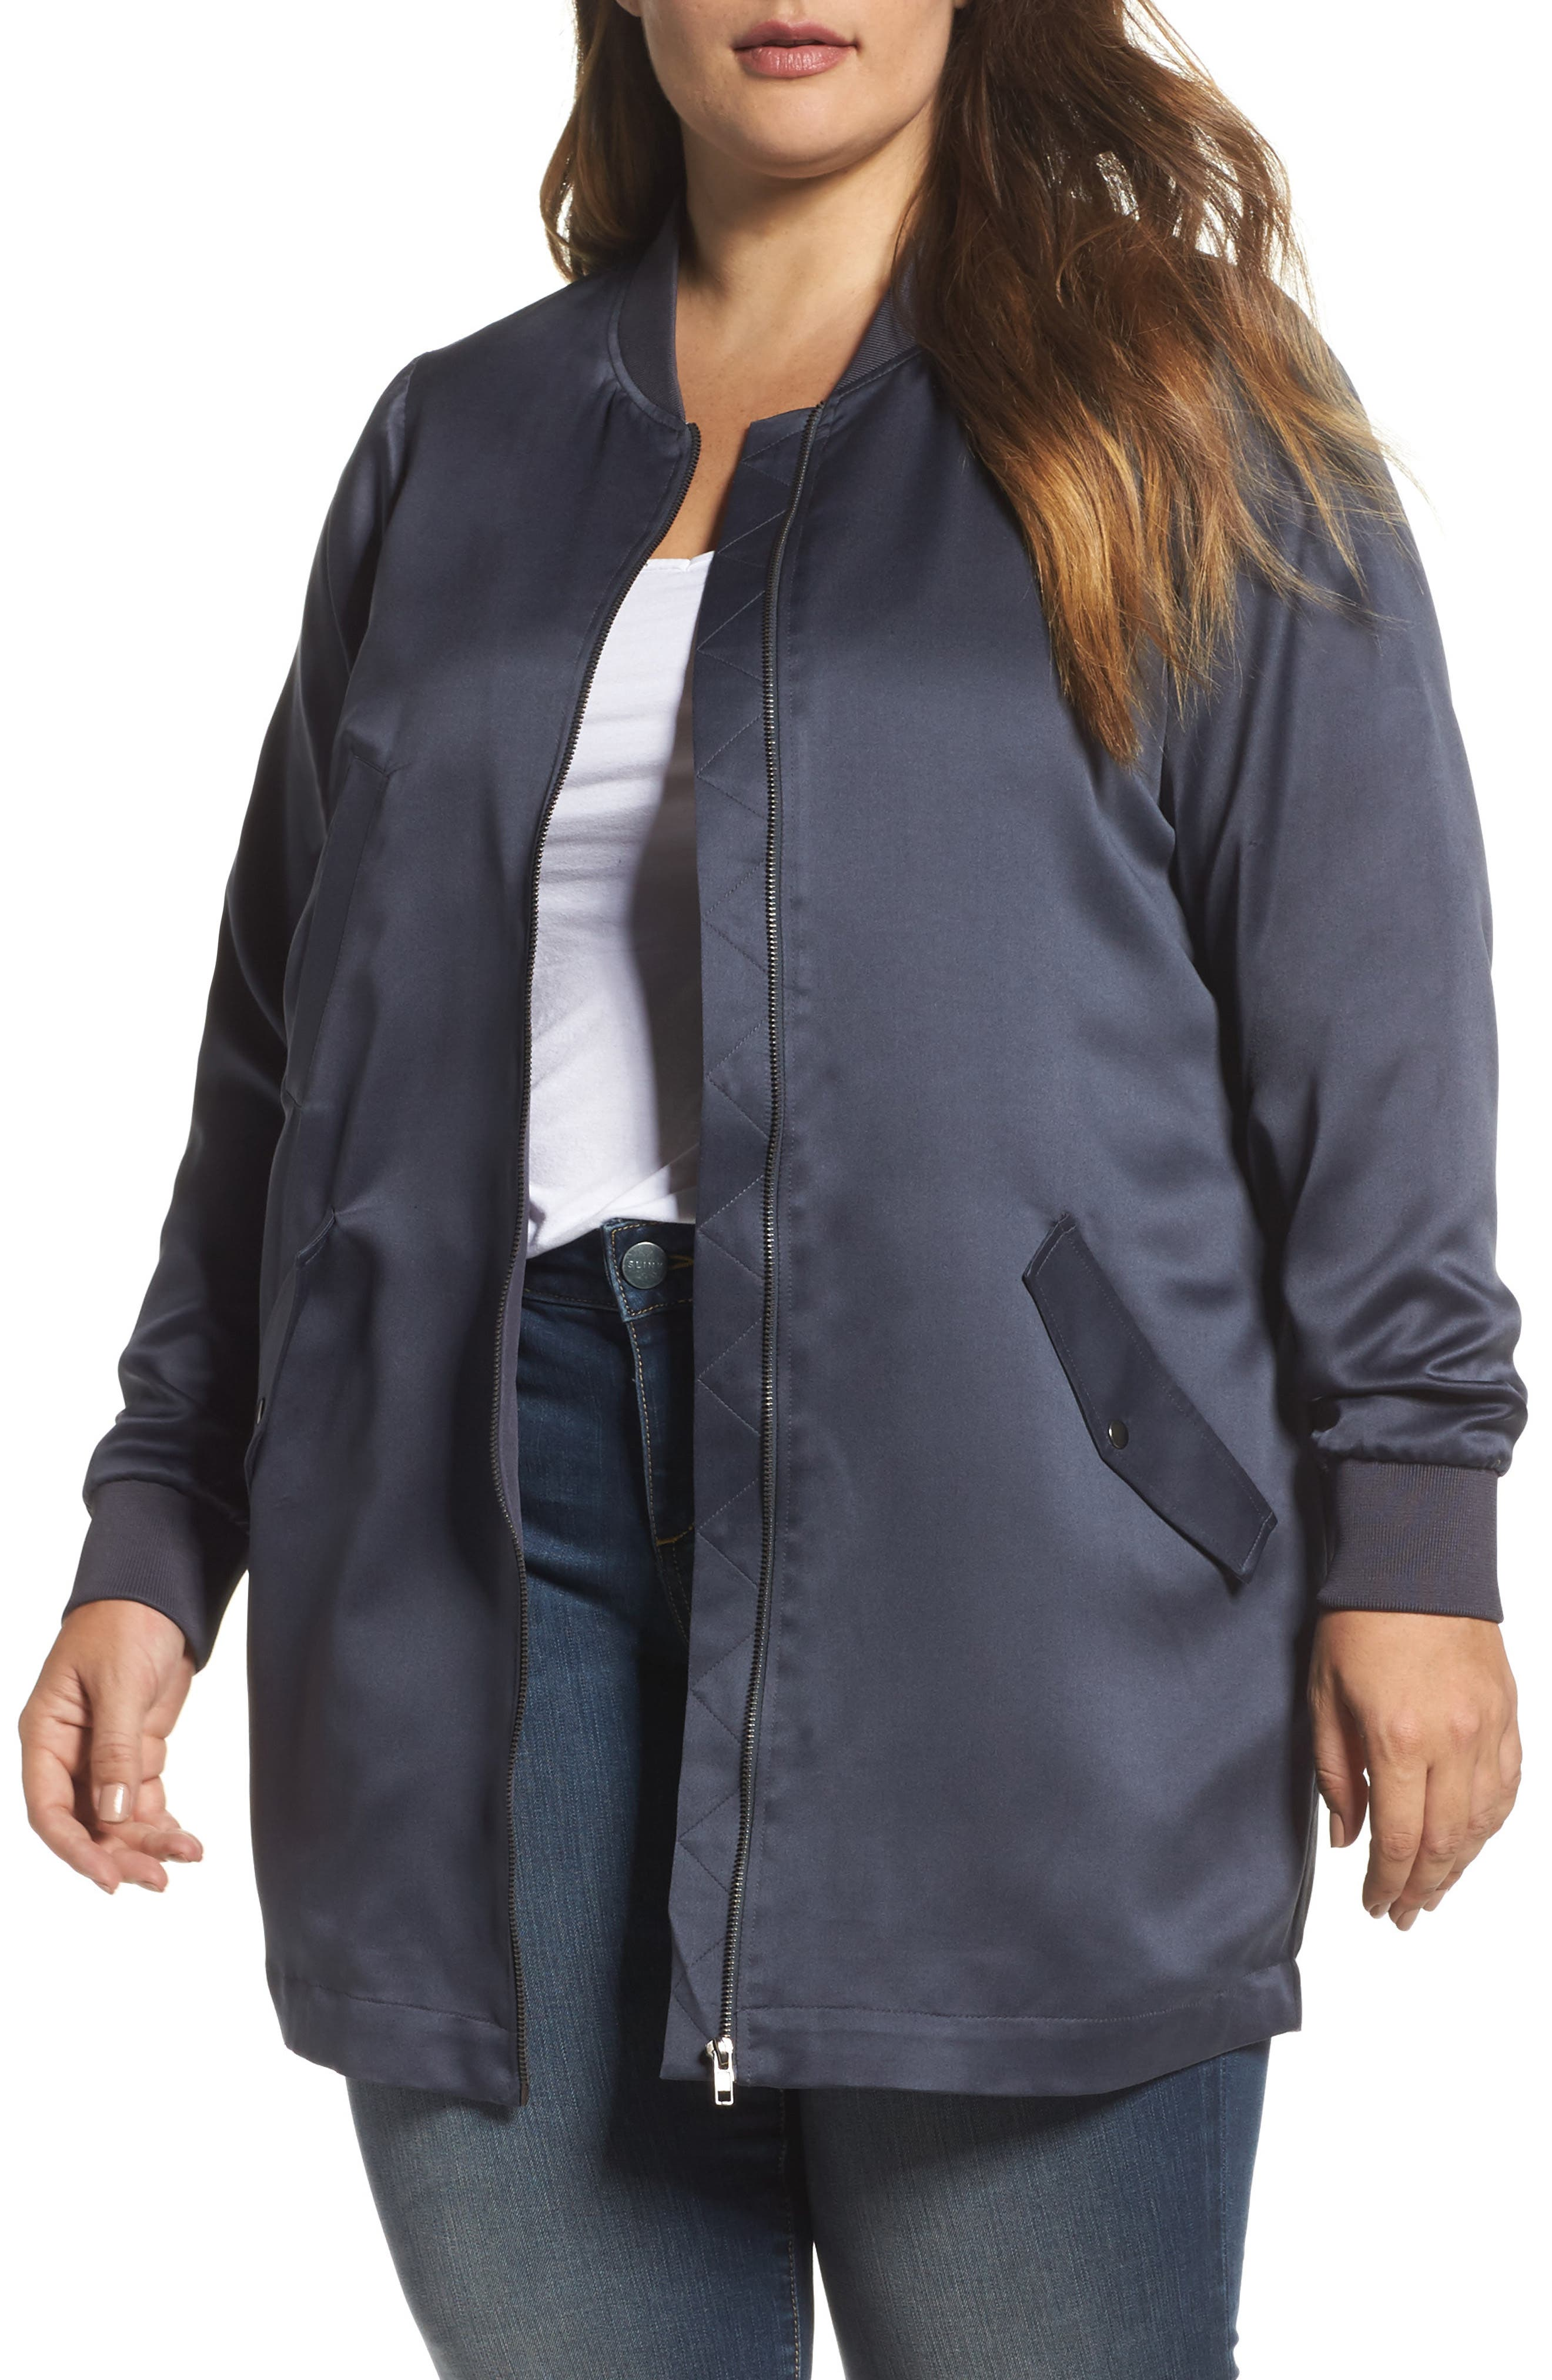 Limba Tunic Length Bomber Jacket,                         Main,                         color, Ombre Blue